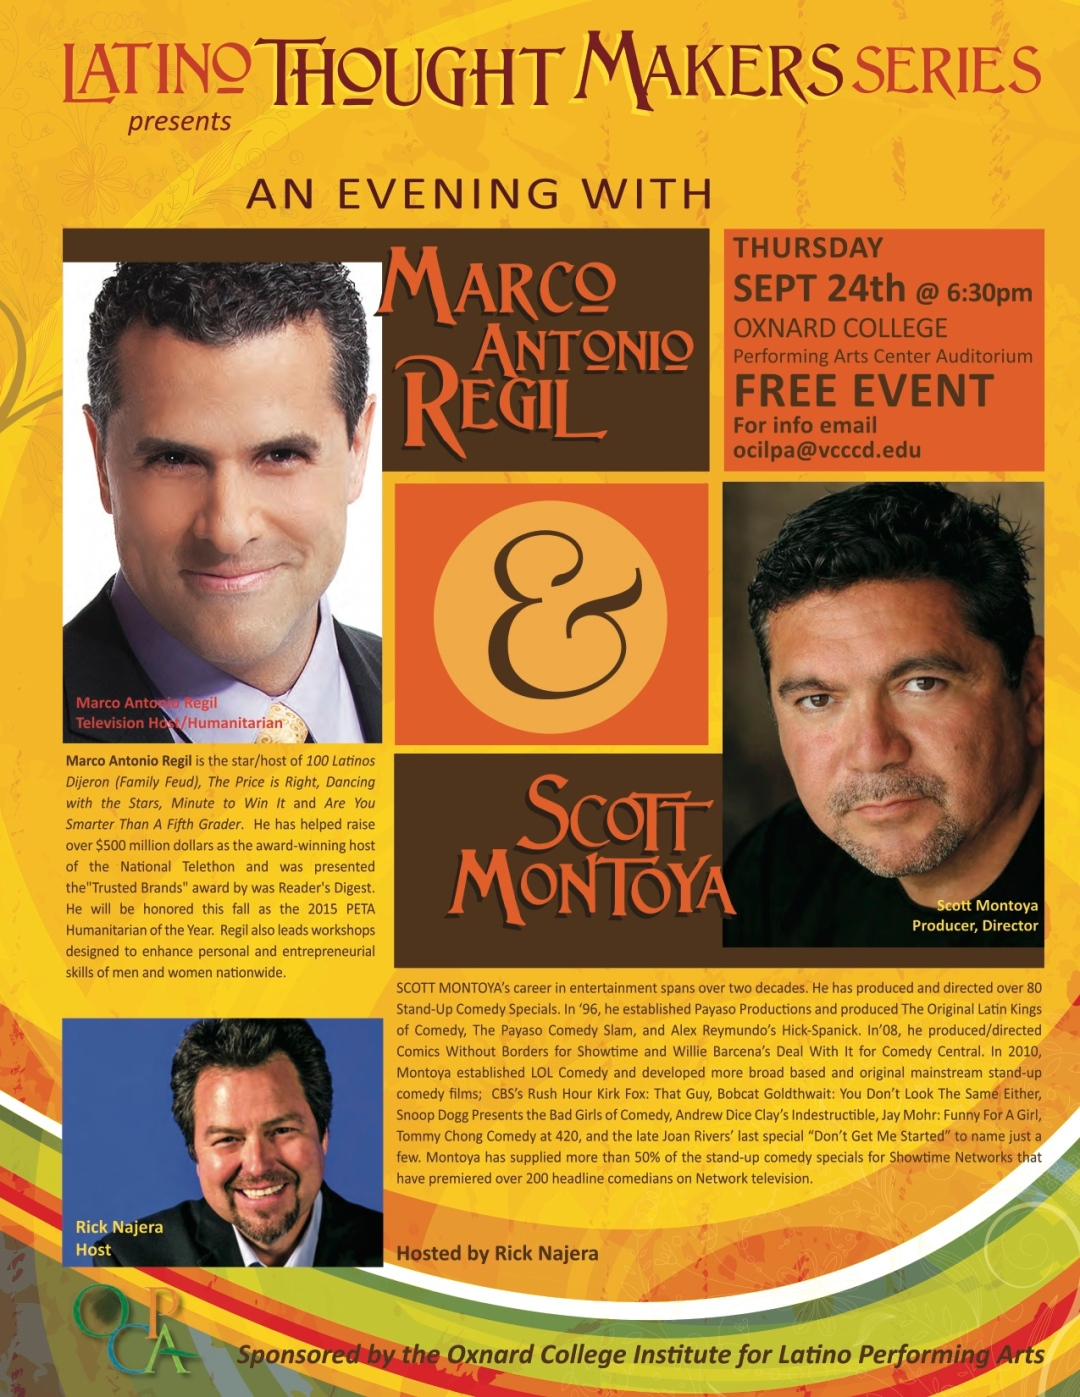 Latino Thought Makers, Rick Najera, Marco Antonio Regil, Scott Montoya